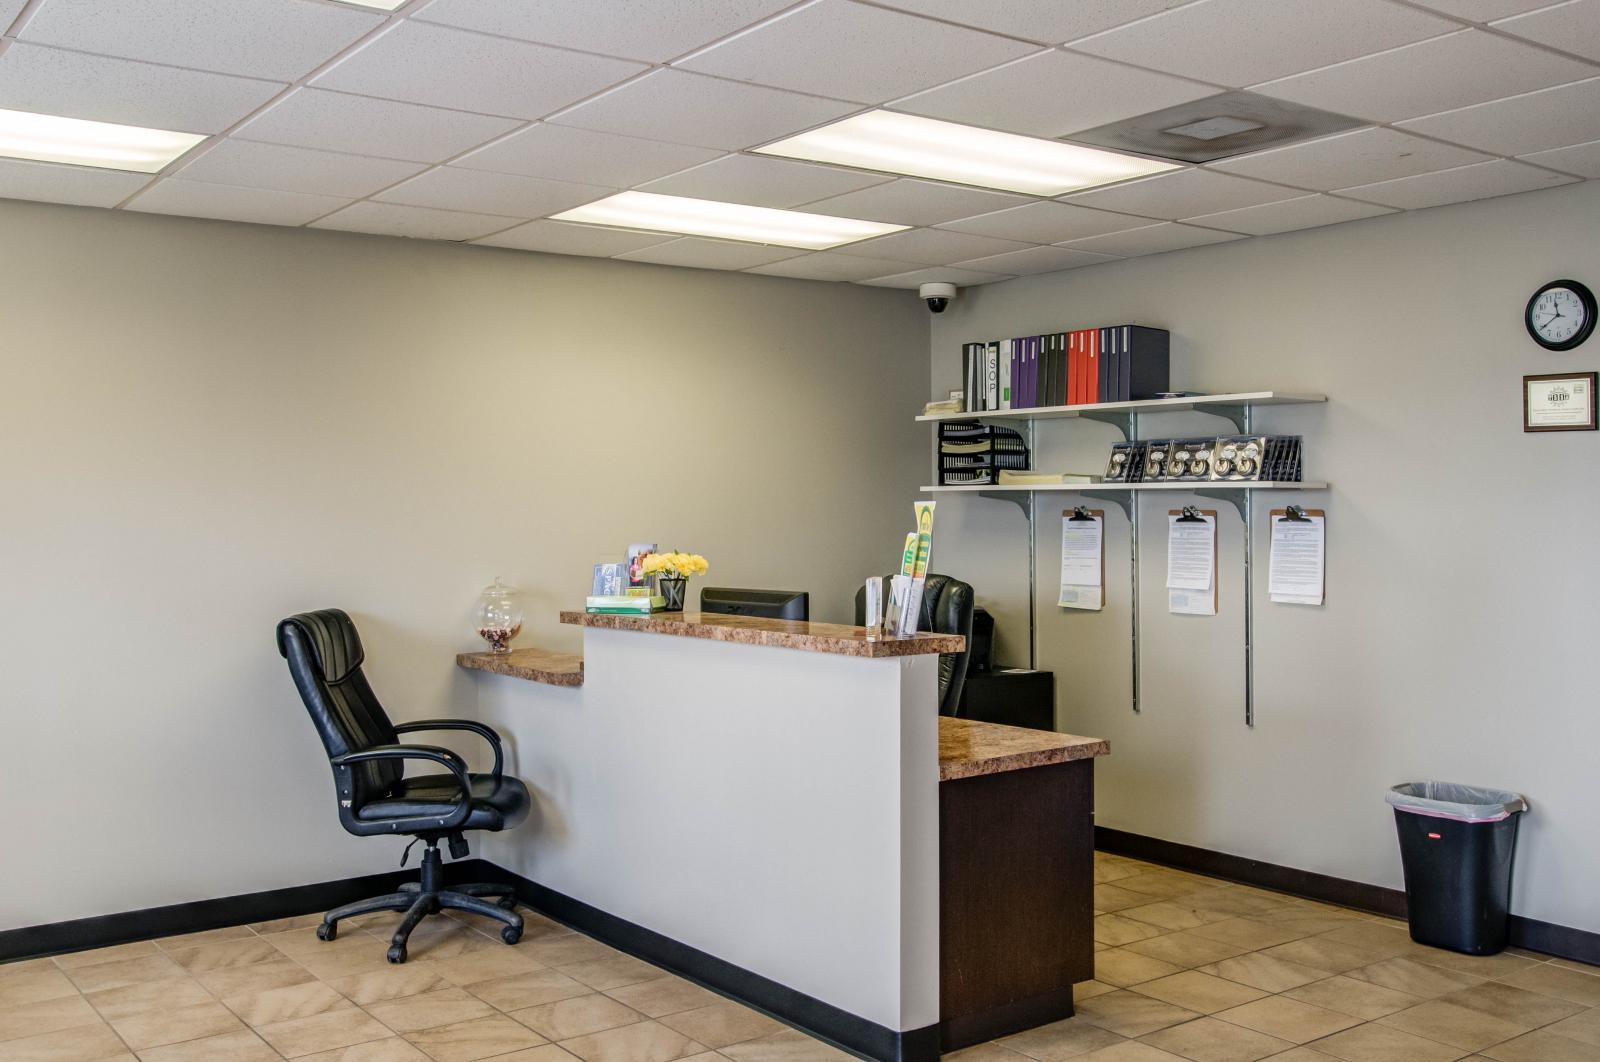 The offices at Lockaway Storage facilities serve more purposes than just accepting rent payments.